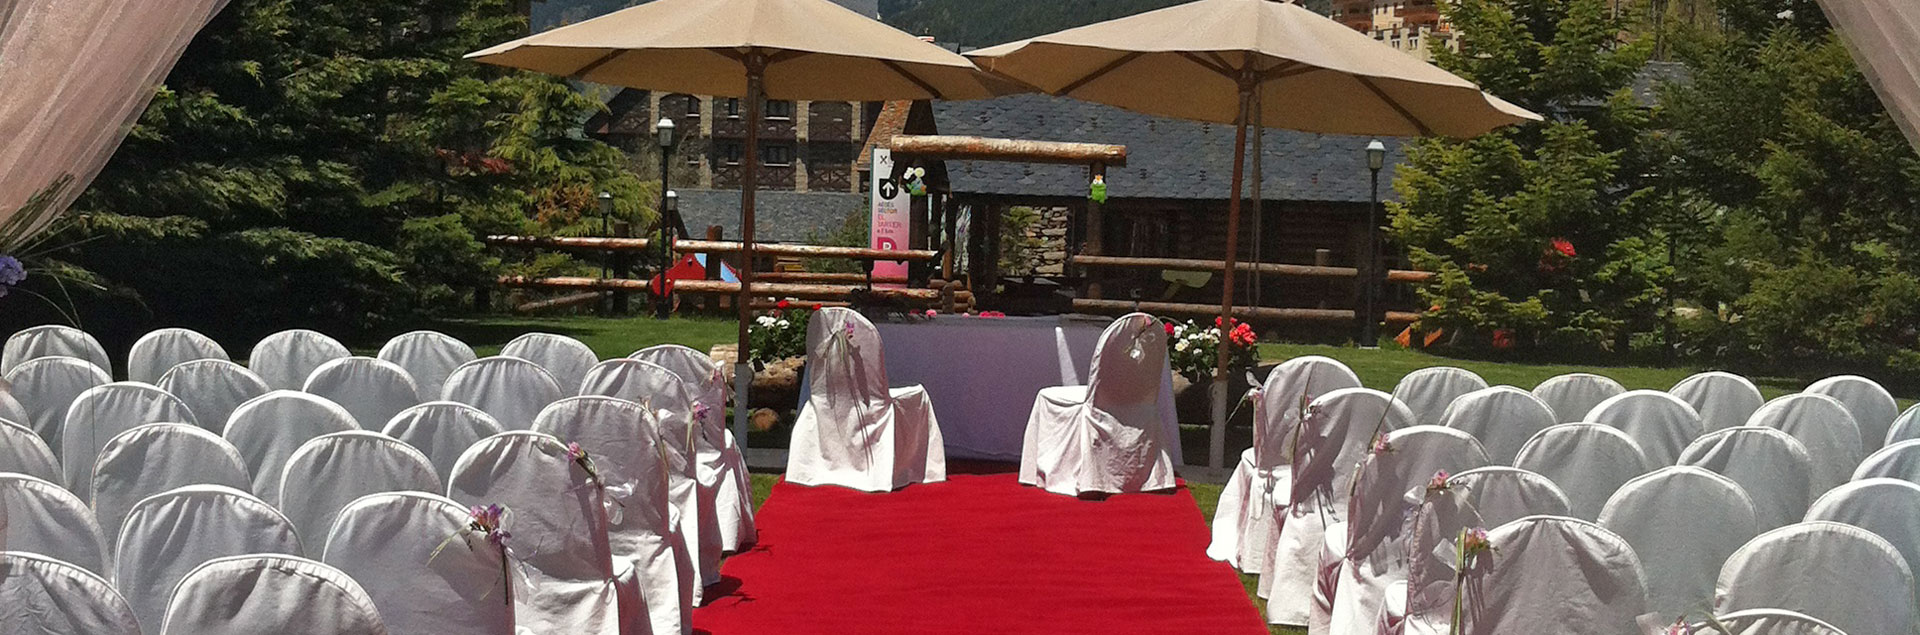 Preparation of the spaces for civil weddings